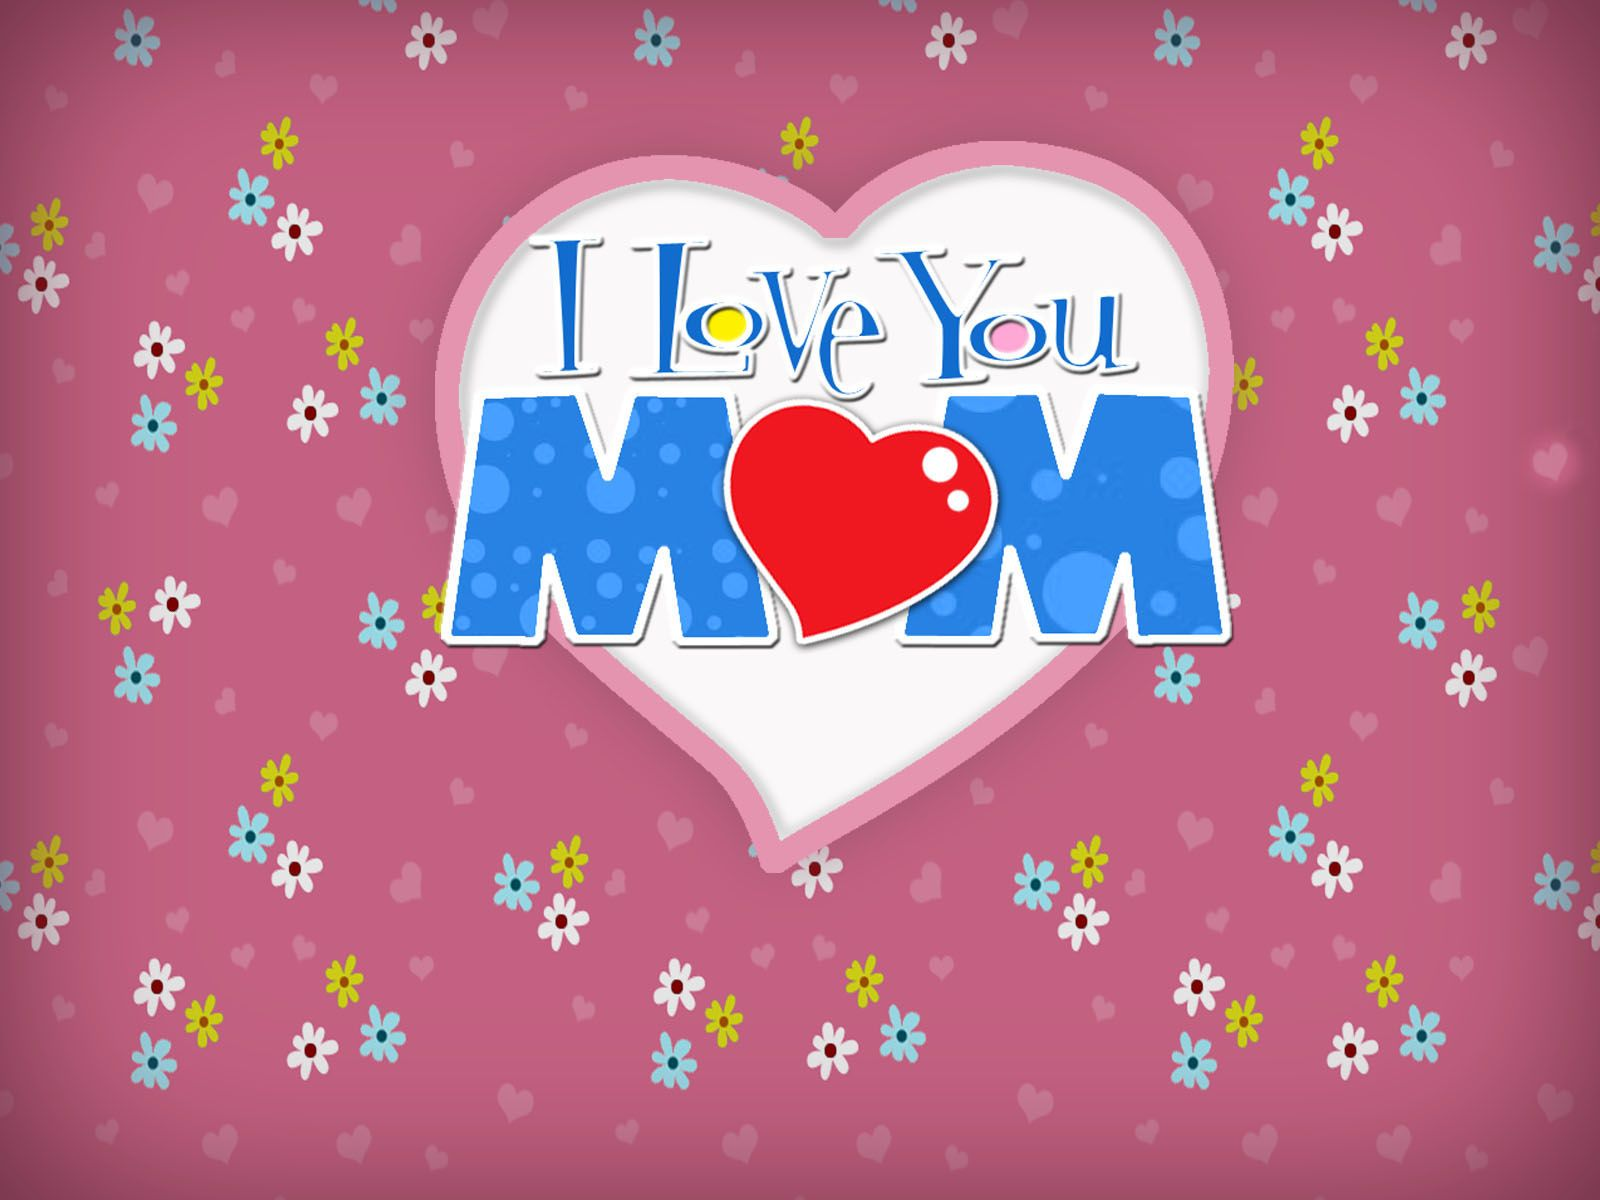 Dad And Mom Love 24866 Hd Wallpapers in Love   Imagescicom 1600x1200